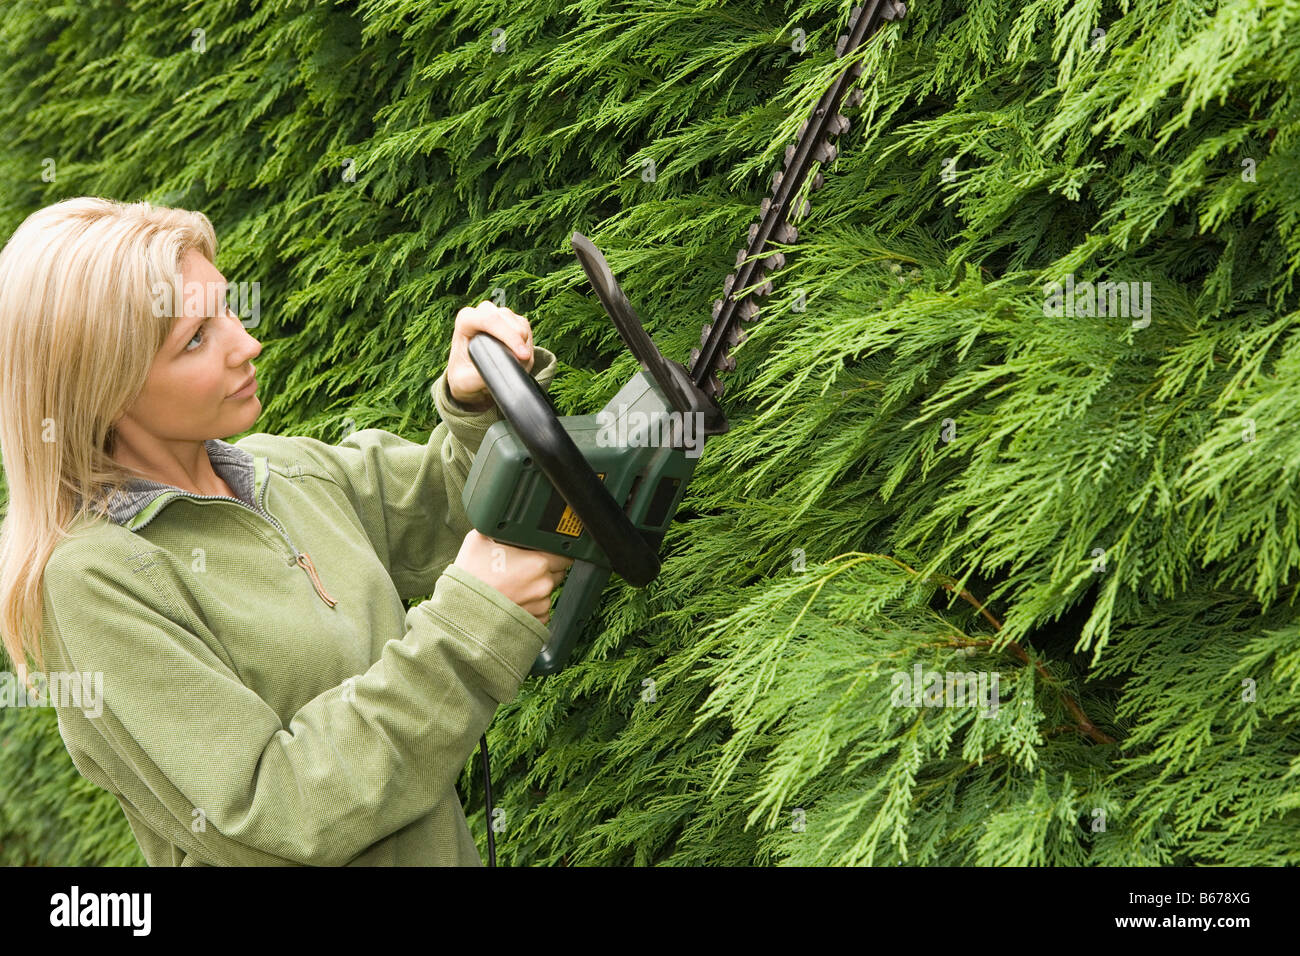 Woman trimming a hedge - Stock Image